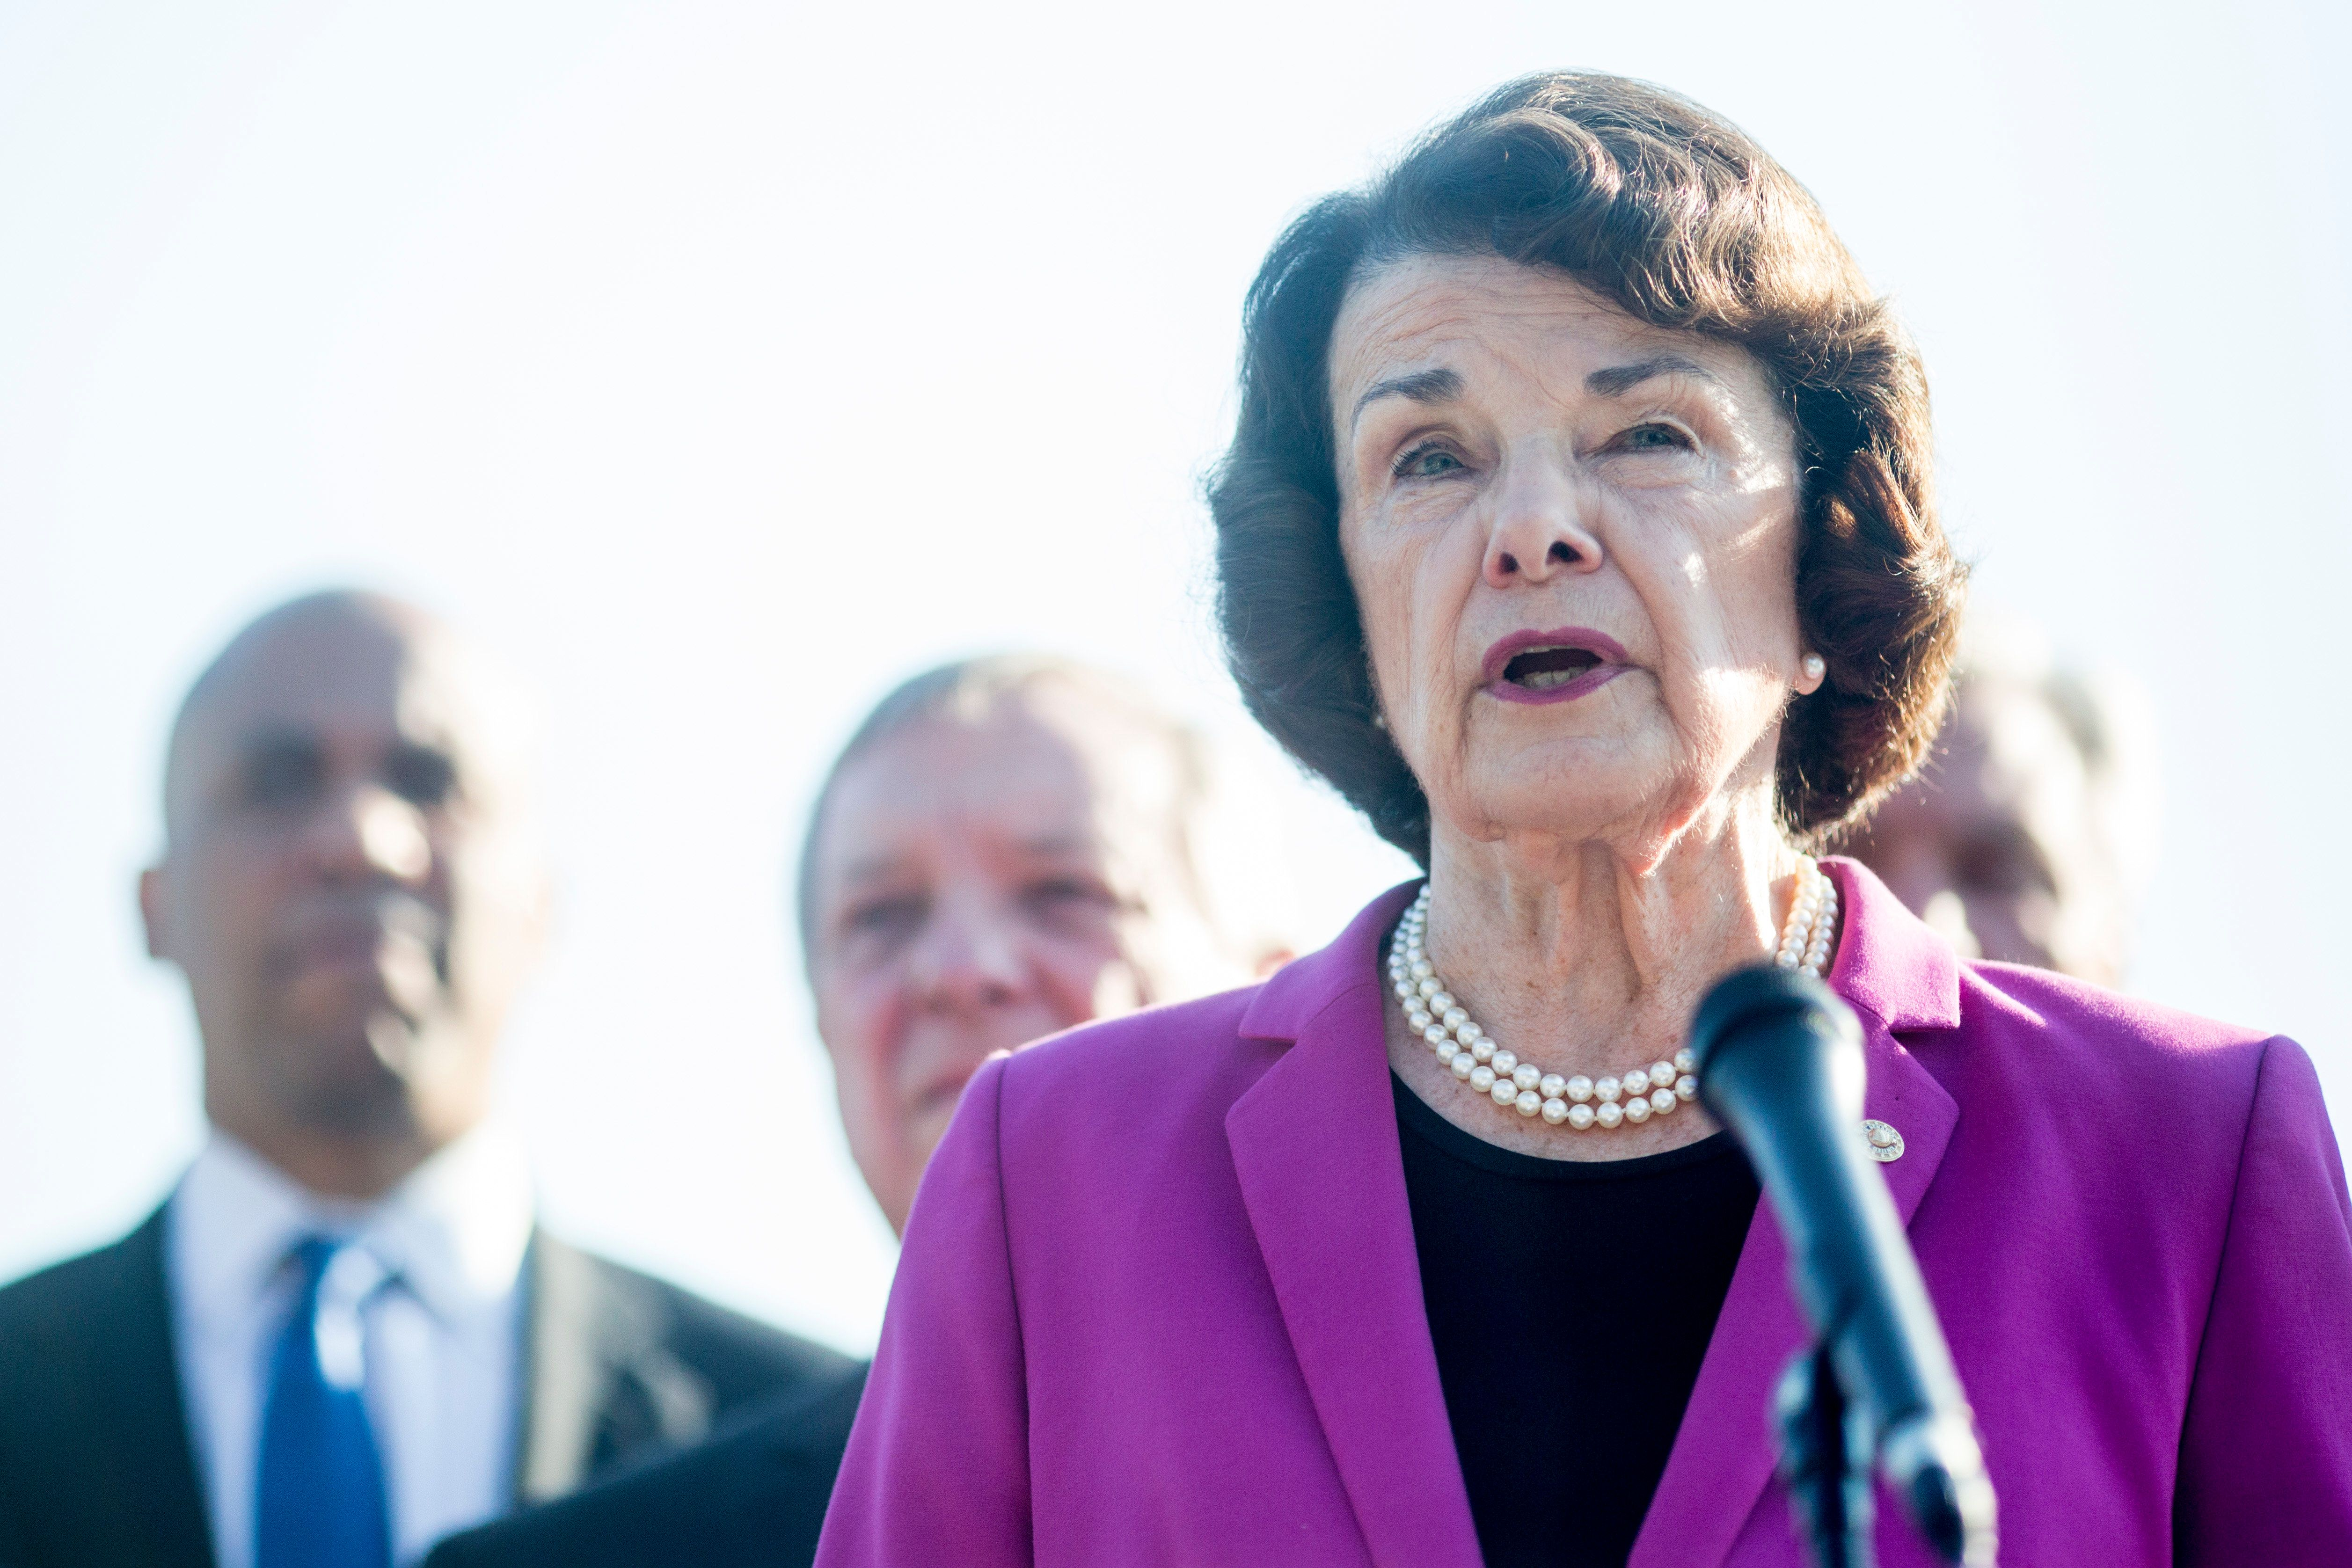 Sen. Dianne Feinstein has been facing pressure from her fellow Democrats to release a document about Supreme Court